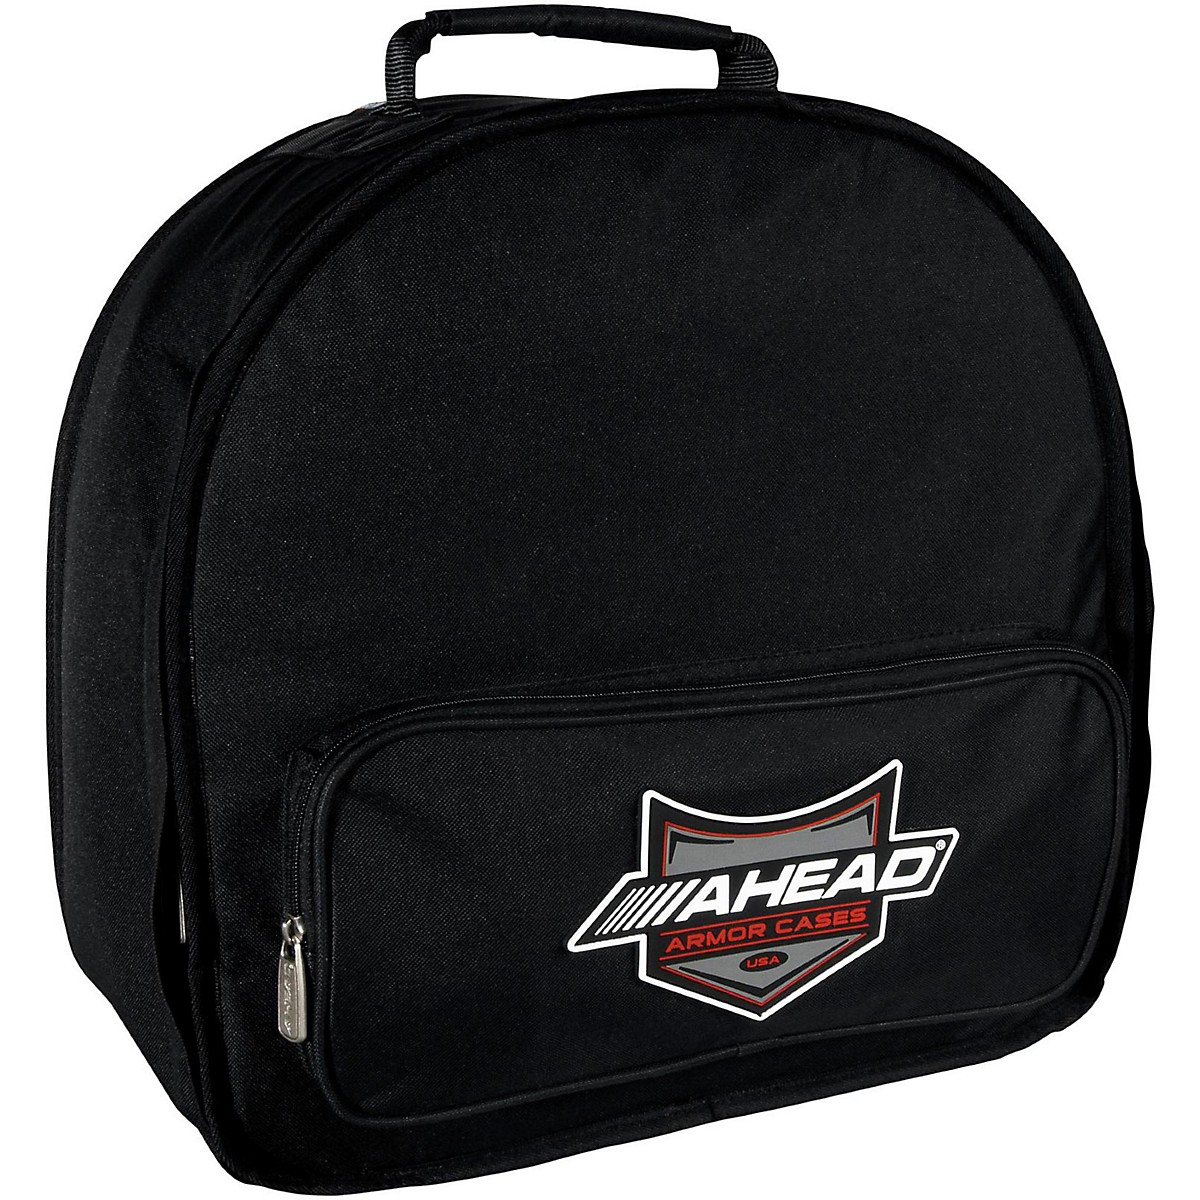 Ahead Armor Cases Large Drum Throne/Snare Case and Stand